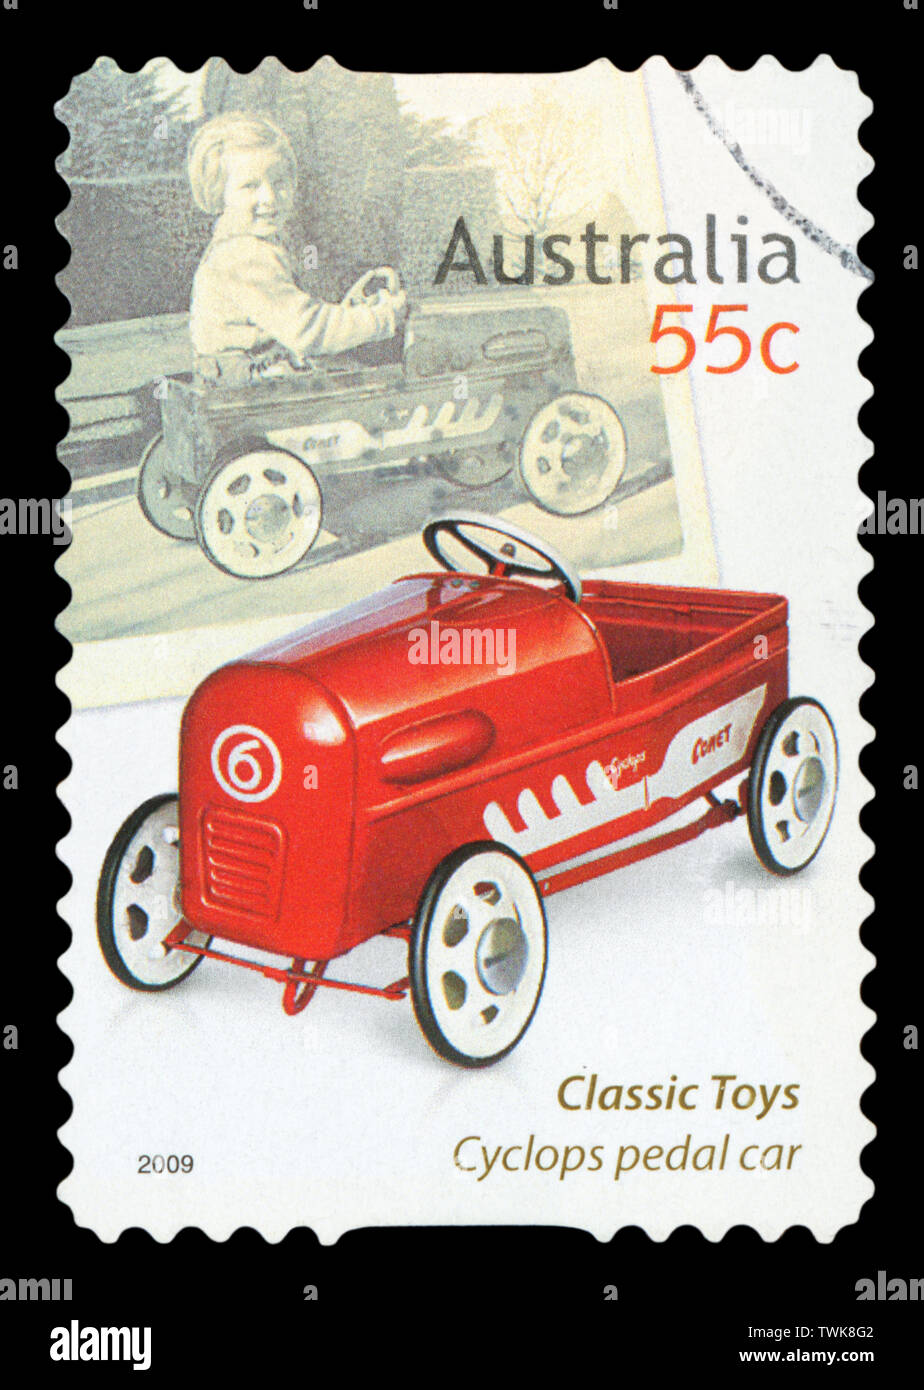 AUSTRALIA - CIRCA 2009: A stamp printed in Australia dedicated to classic toys, shows Cyclops pedal car, circa 2009. - Stock Image